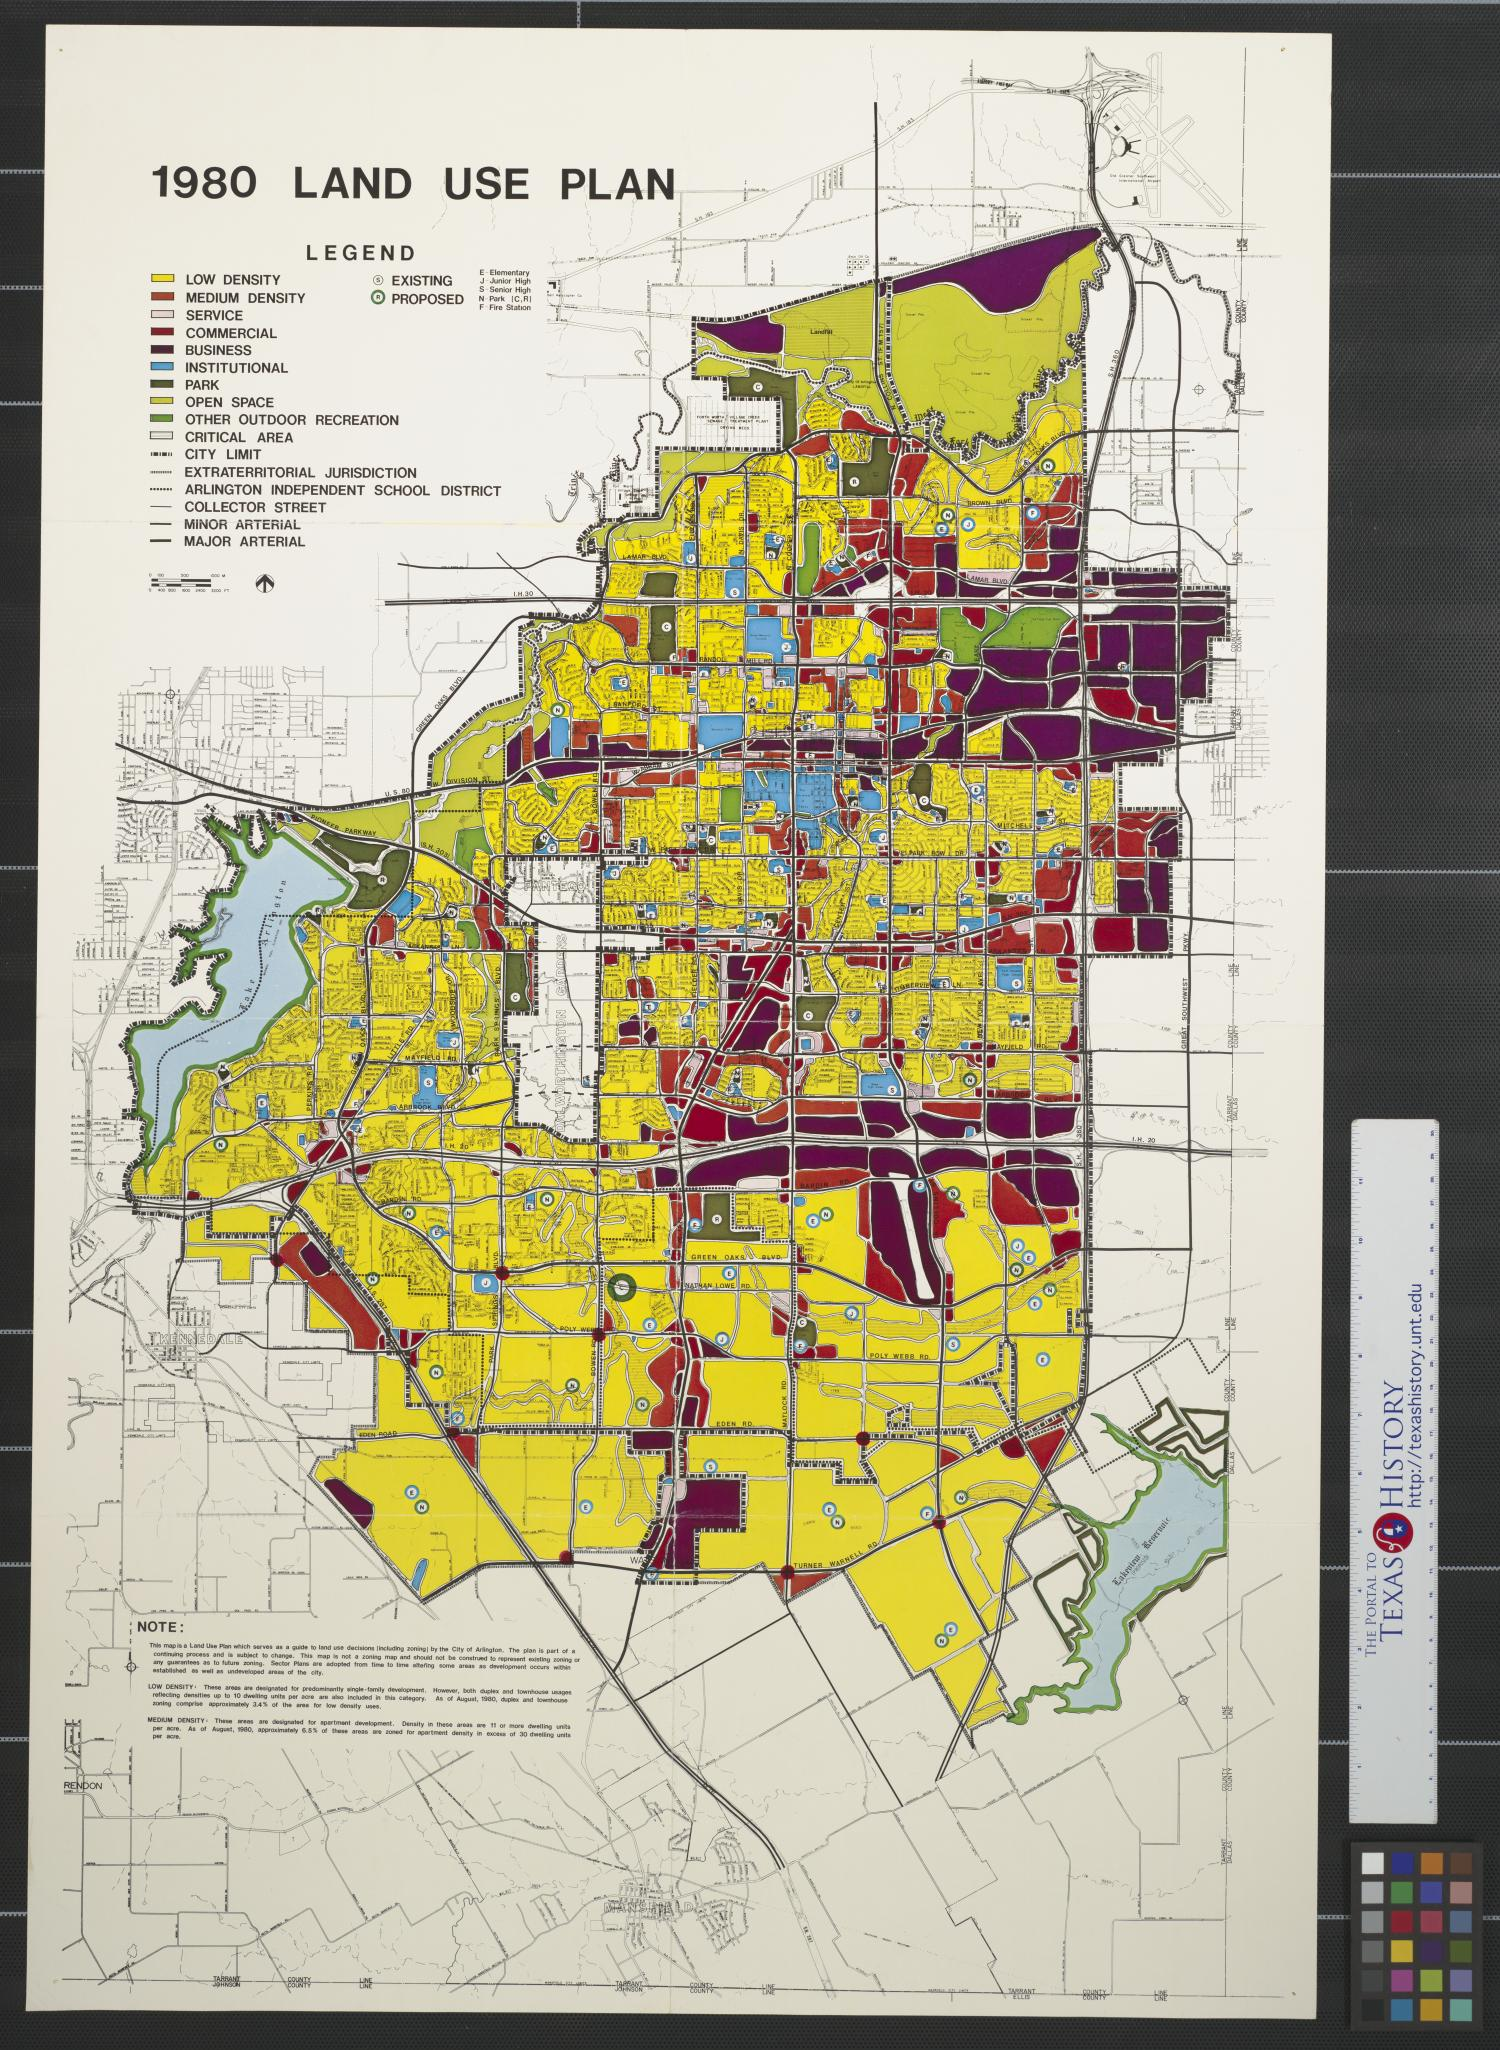 1980 [Arlington, Texas] land use plan. - The Portal to Texas ... on map of axtell, map of fort worth, map of seaport district, map of dwight, map of graysville, map of arga, map of girard, map of foxborough, map of somervell county, map of ponderosa estates, map of north chelmsford, map of beltzhoover, map of fort steilacoom, map of east jacksonville, map of comfort, map of cedar, map of west salem, map of roane county, map of crandall, map of oak hill,